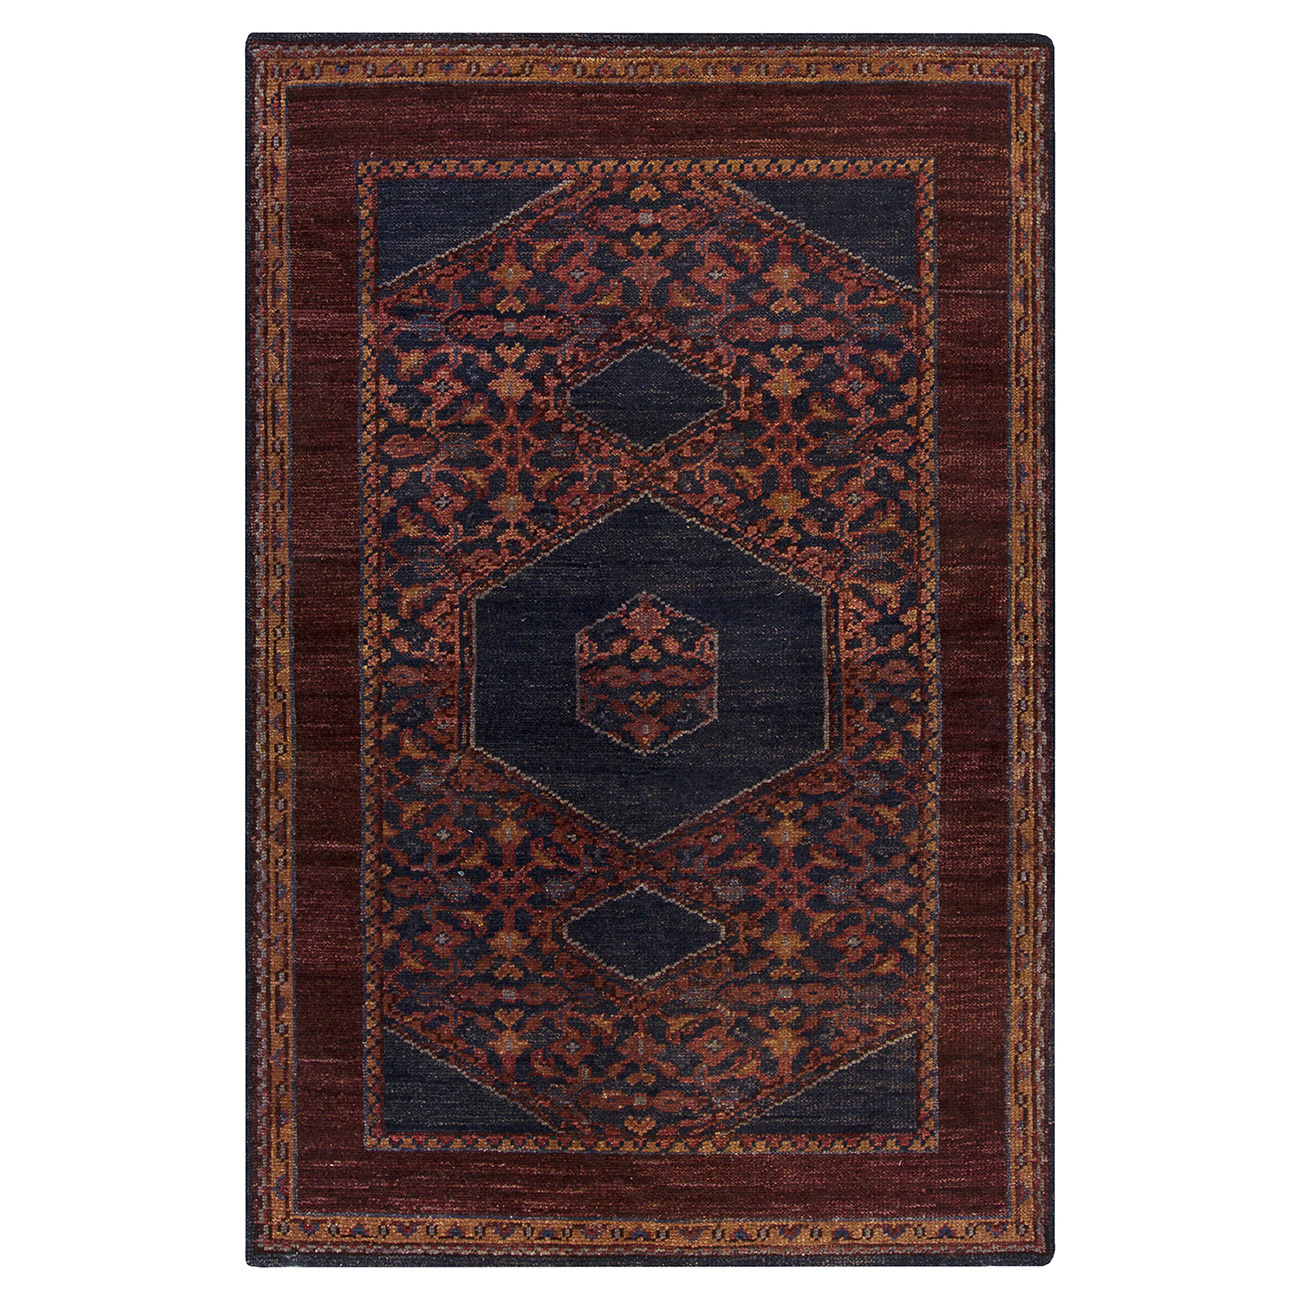 Priya Bazaar Antique Wash Burgundy Wool Rug - 3'6x5'6